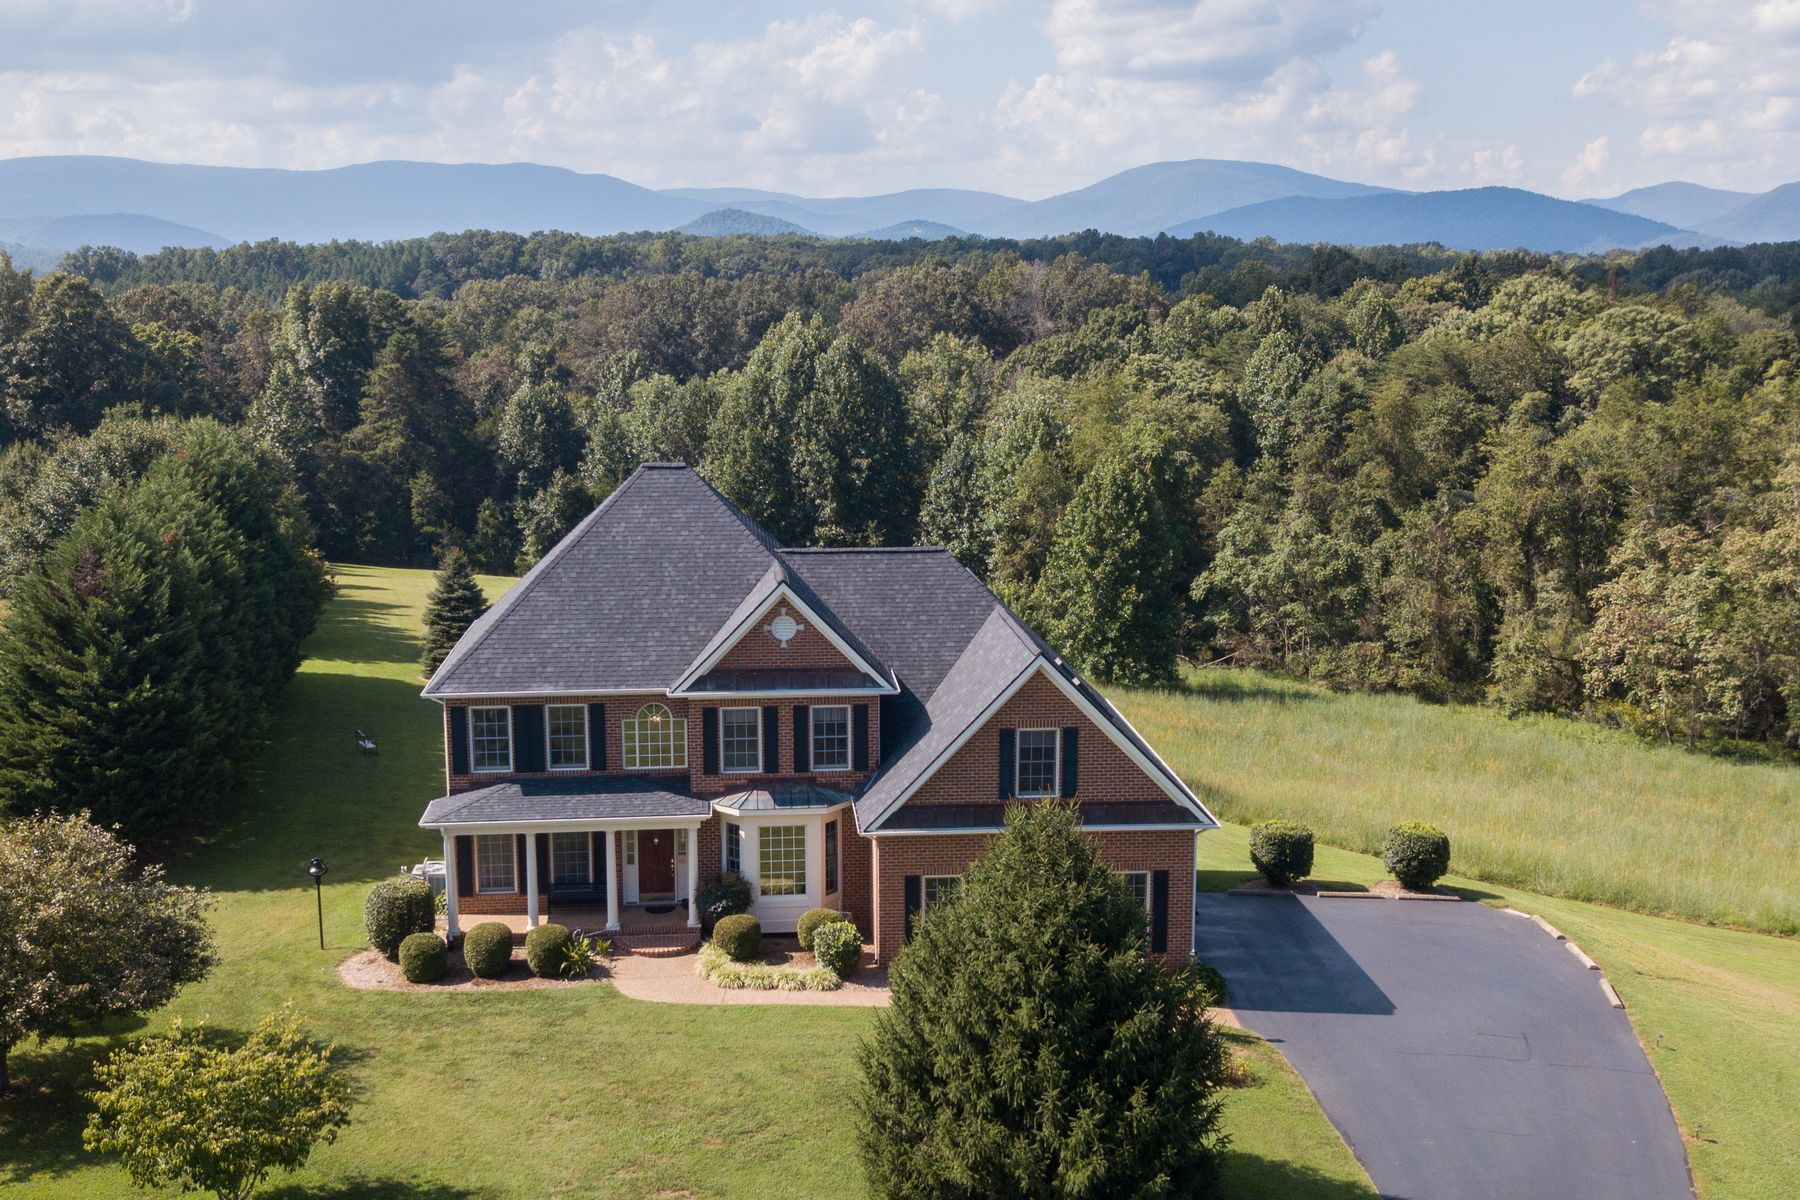 Single Family Homes for Sale at 5080 Snowy Ridge Lane Earlysville, Virginia 22936 United States